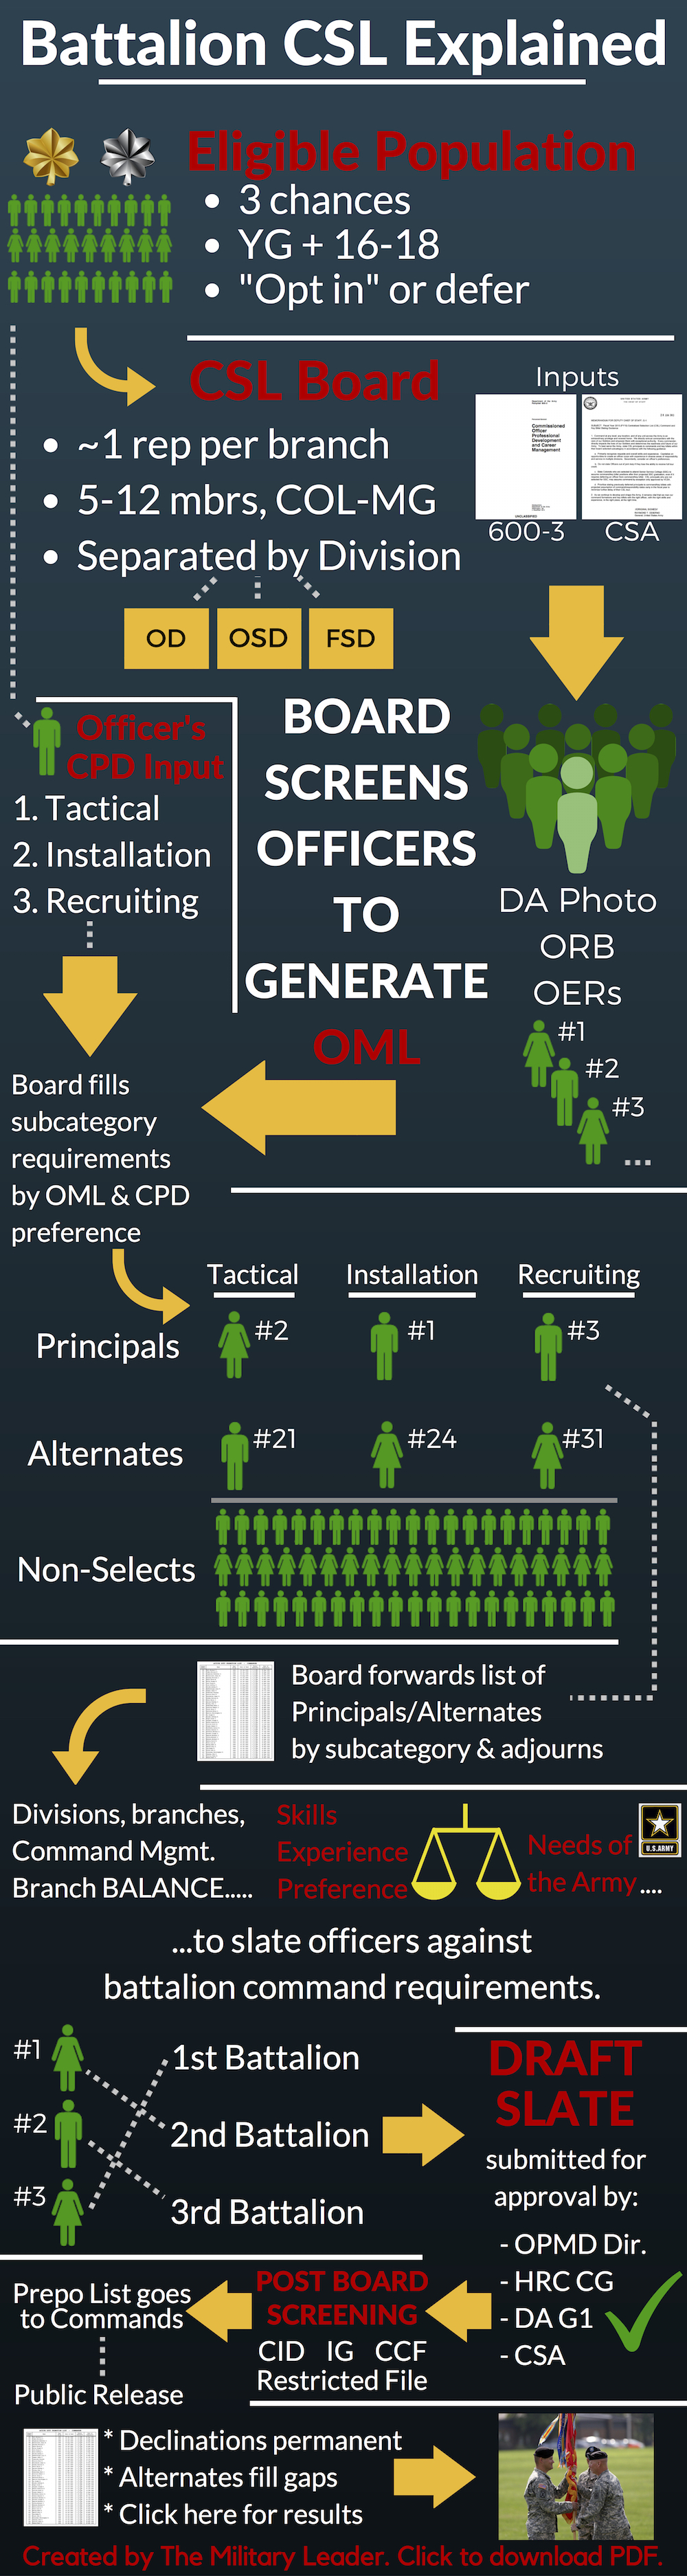 Making Sense Of The Army's Battalion Command Selection